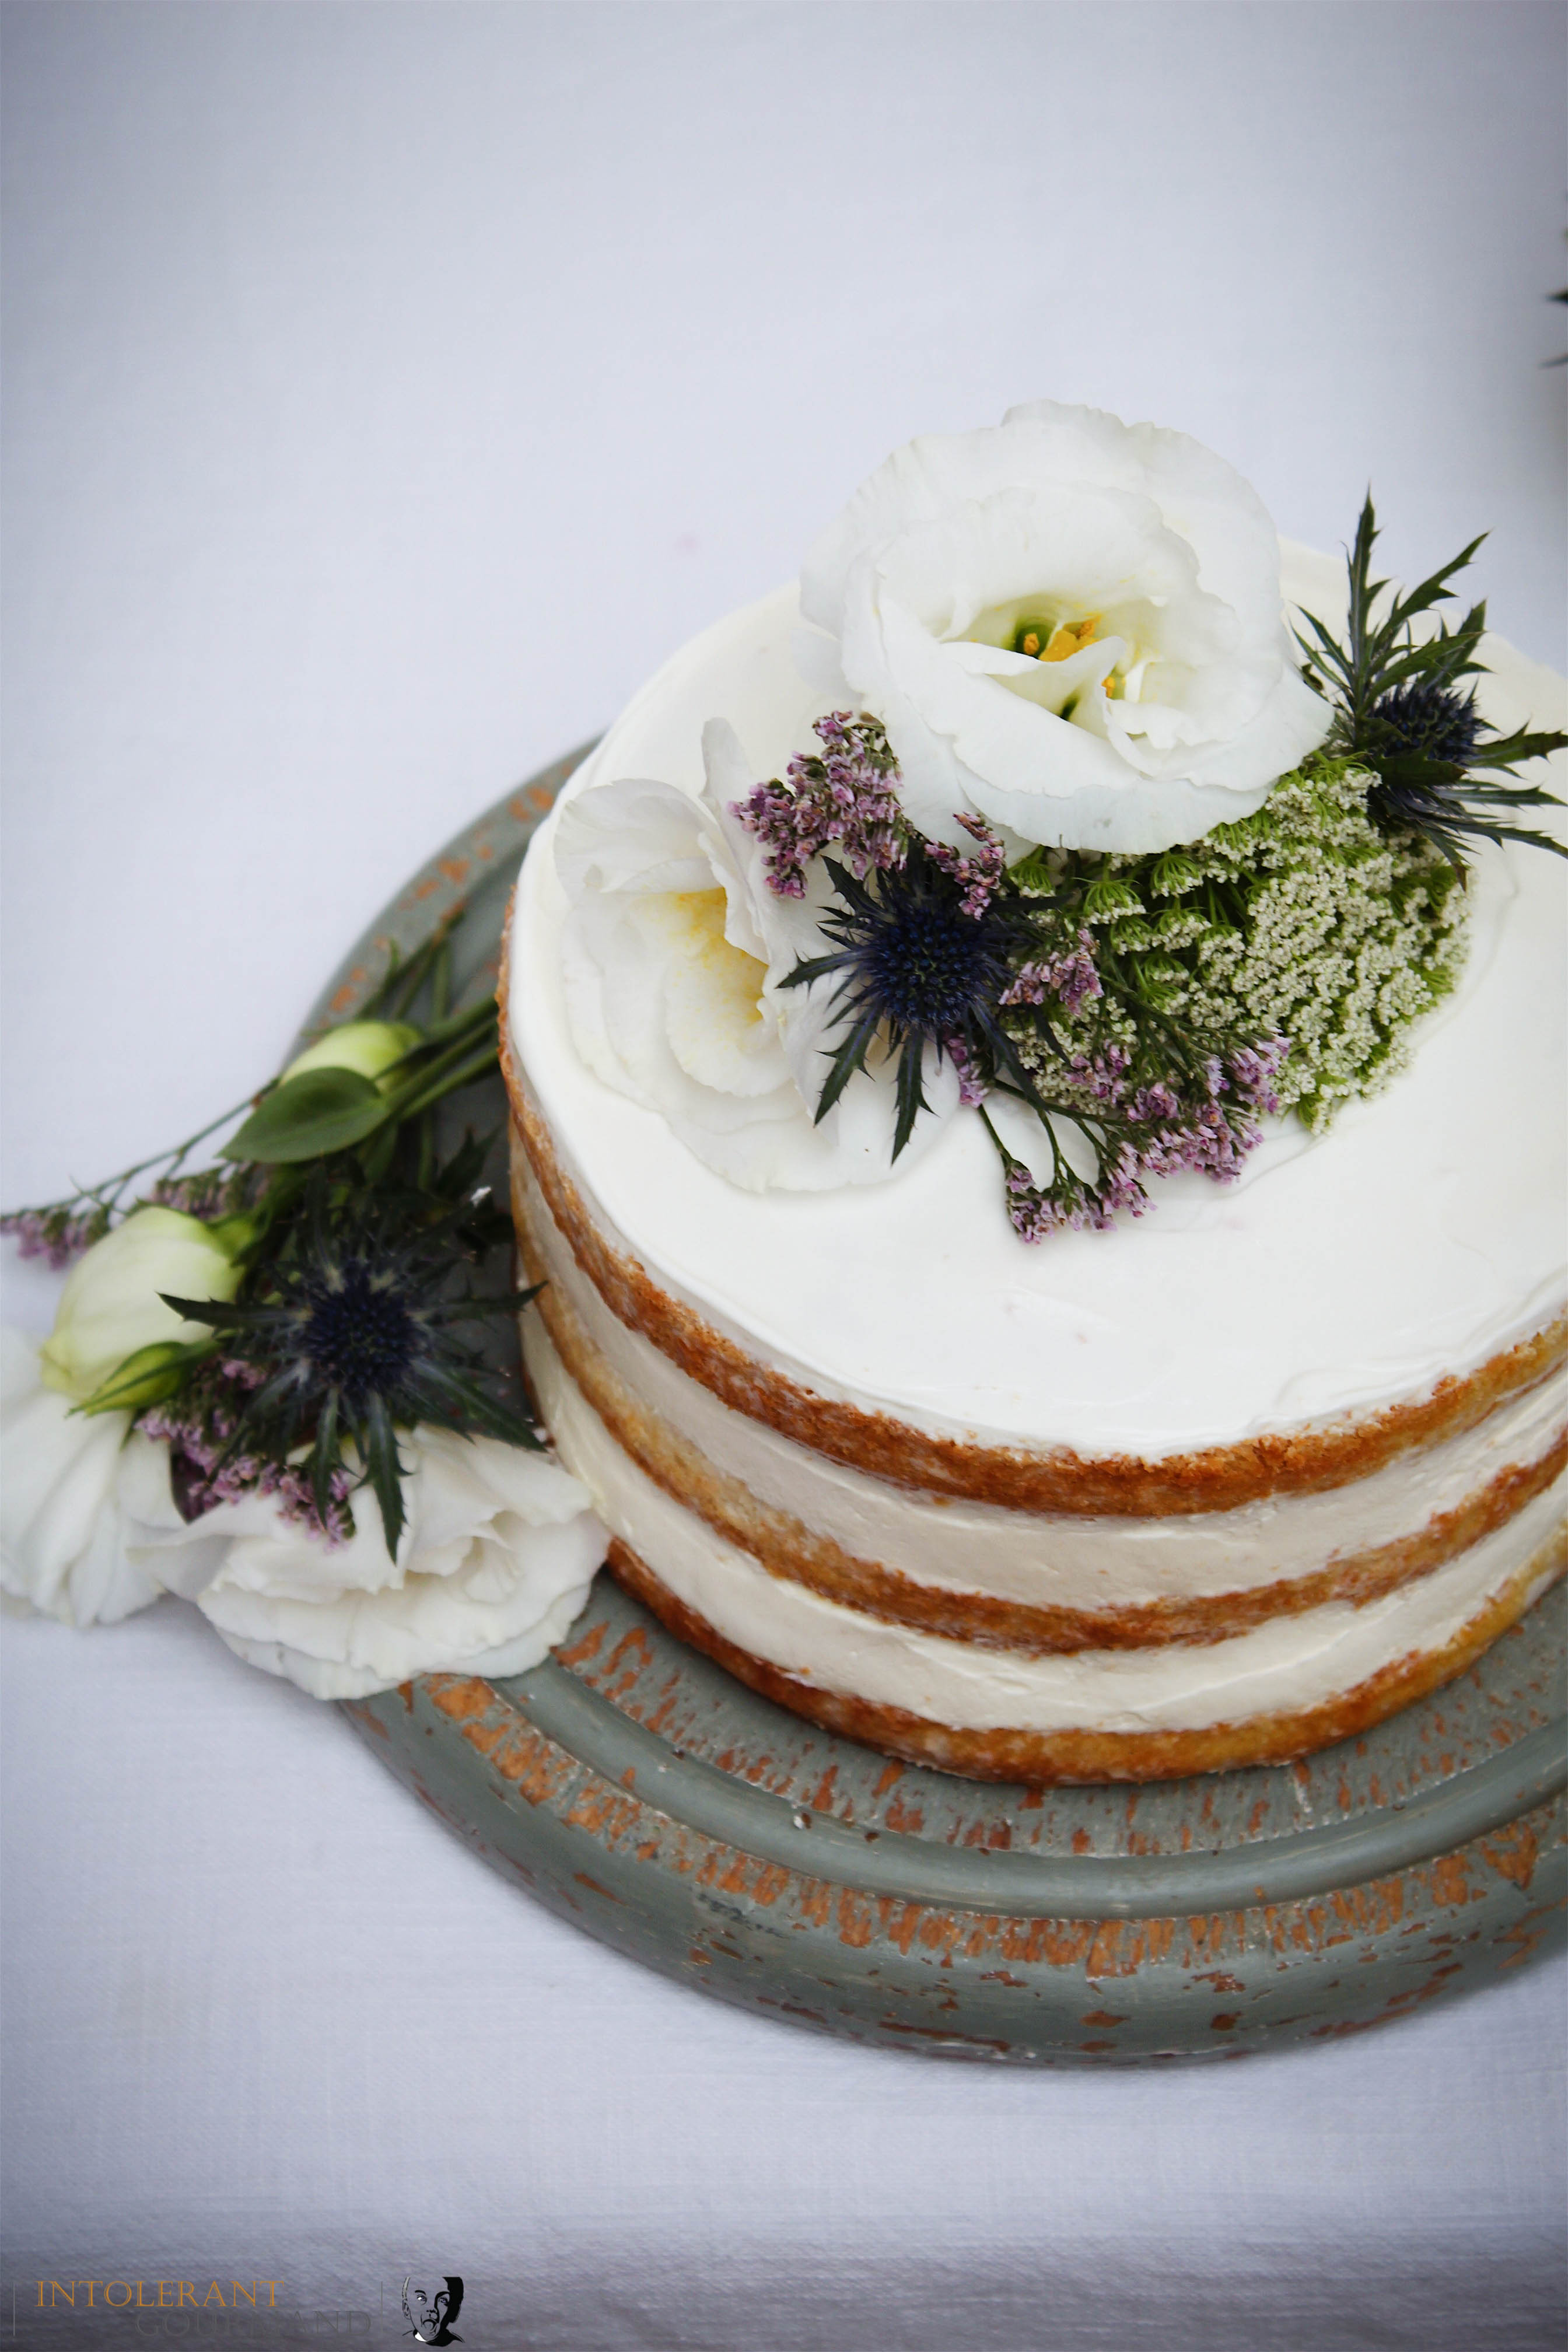 Royal Wedding Cake - Elderflower and Lemon. A beautiful 3 tiered naked cake, covered with smooth buttercream and finished off with fresh flower decorations. Flavoured with elderflower and lemon and perfect for any celebration! It is also gluten-free! www.intolerantgourmand.com